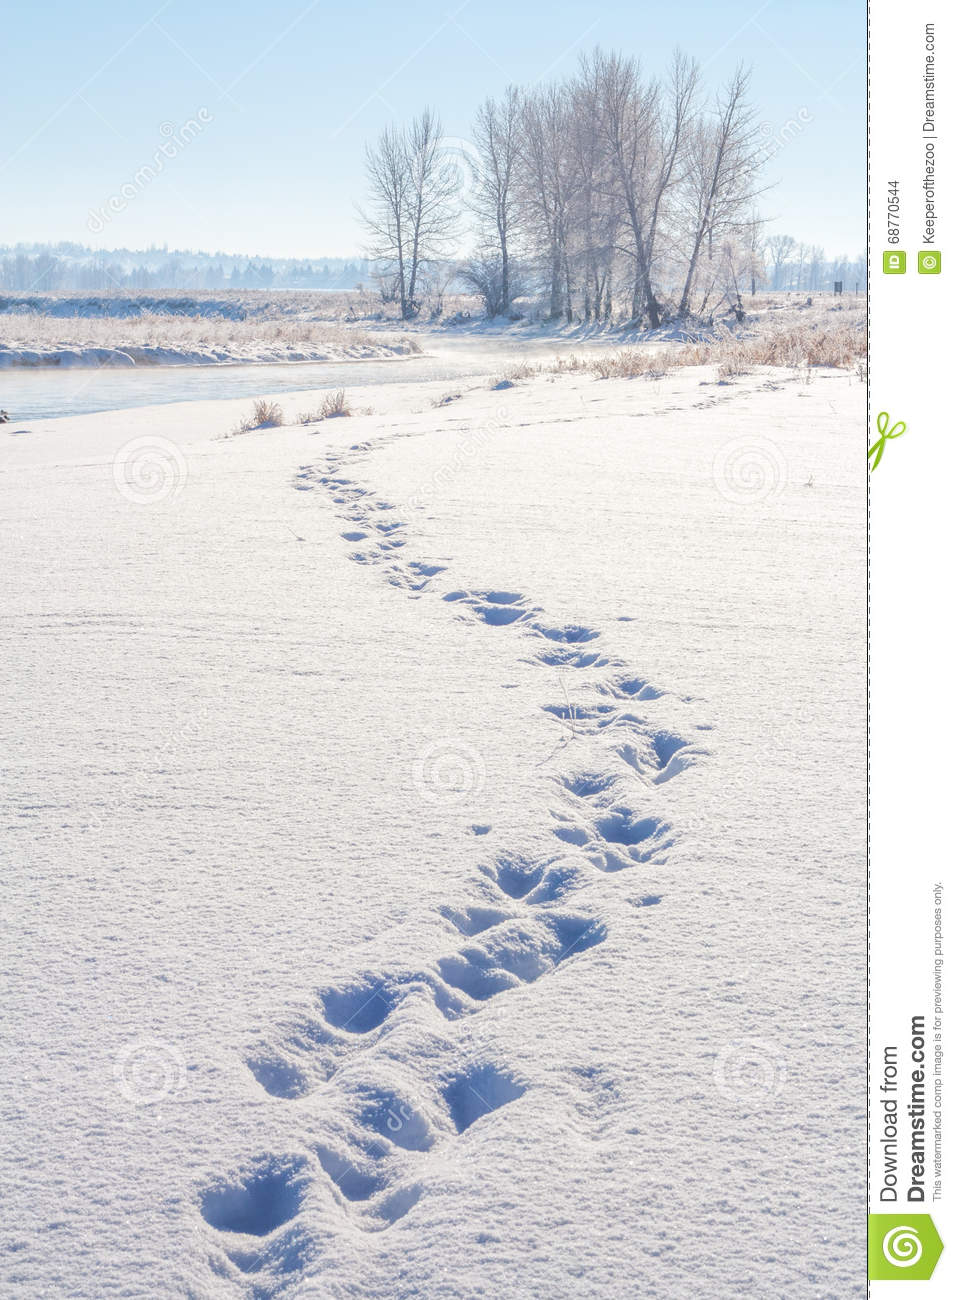 Download Tracks in the Snow stock photo. Image of nature, scenery - 68770544